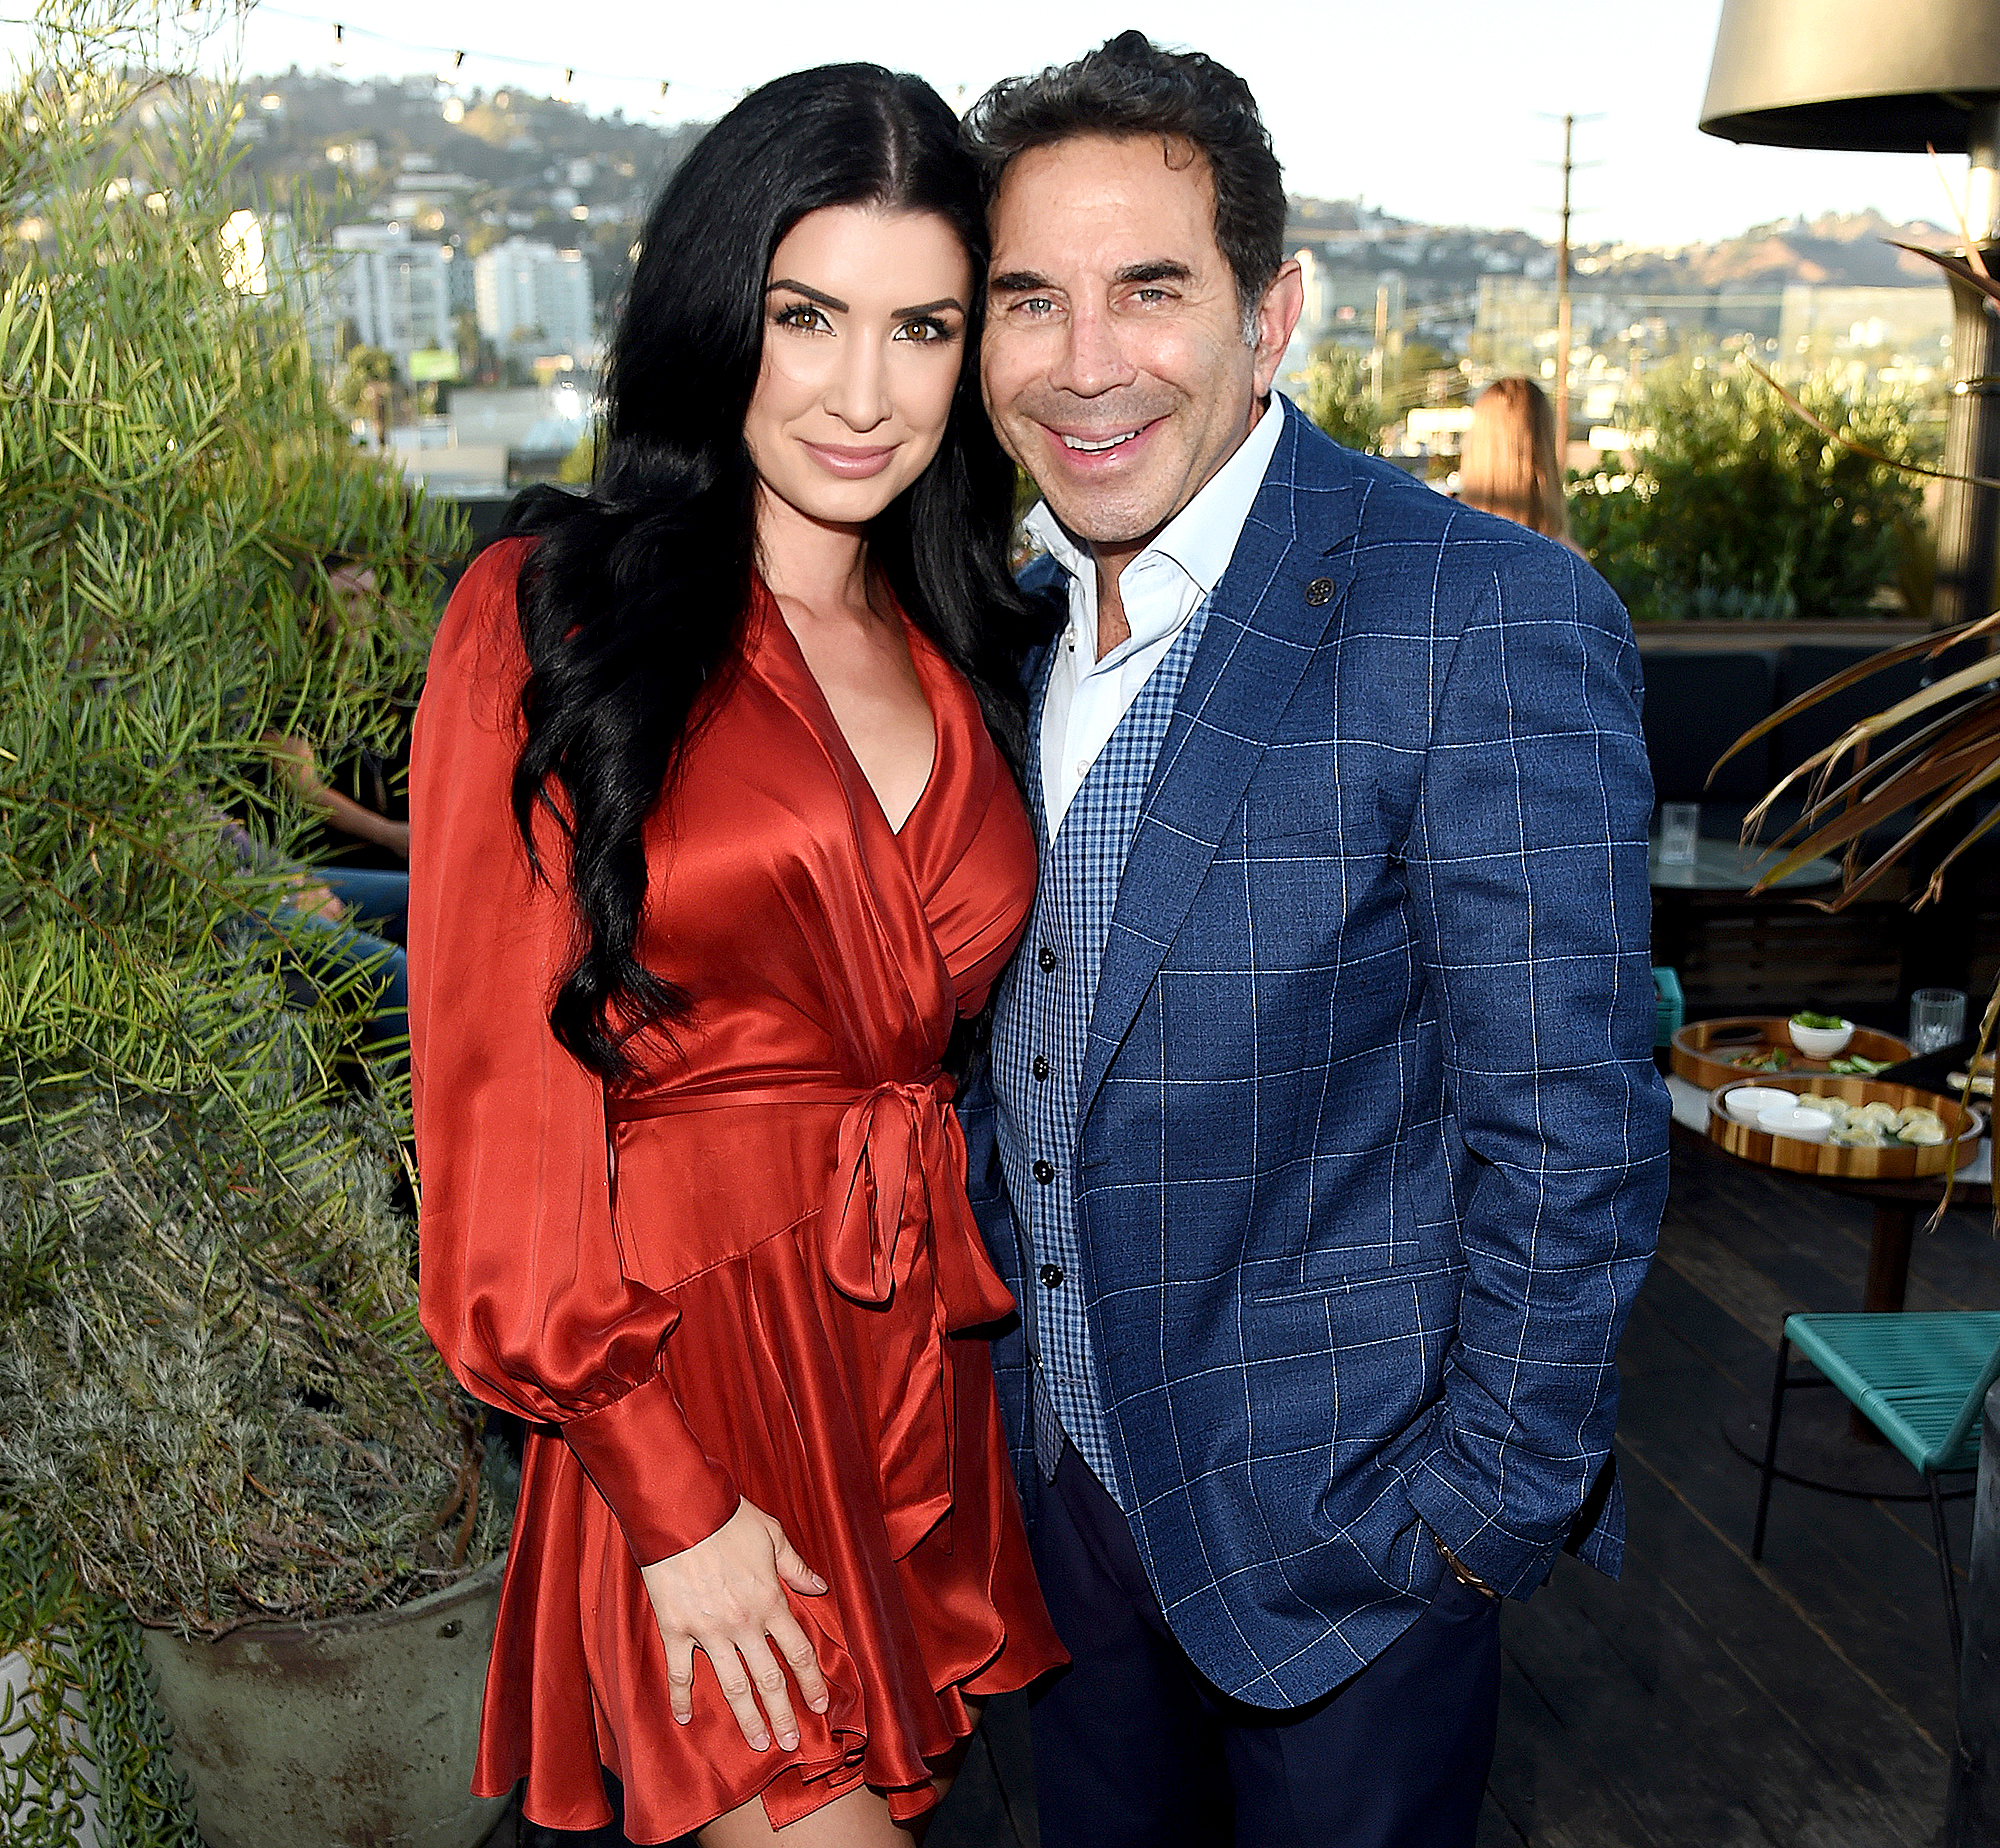 Dr. Paul Nassif And Wife Brittany Pattakos Plan On